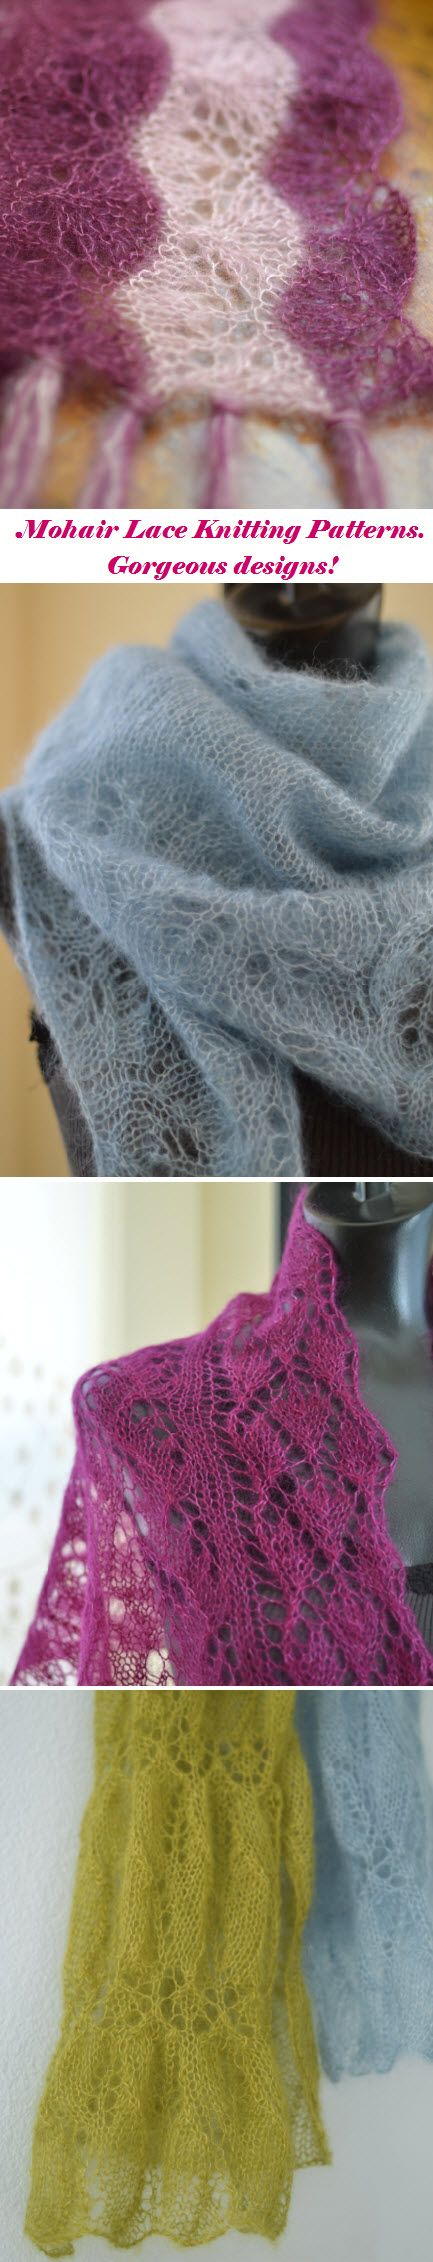 Knitting Pattern for Mohair/Silk yarn. Lots of gorgeous lace designs ...